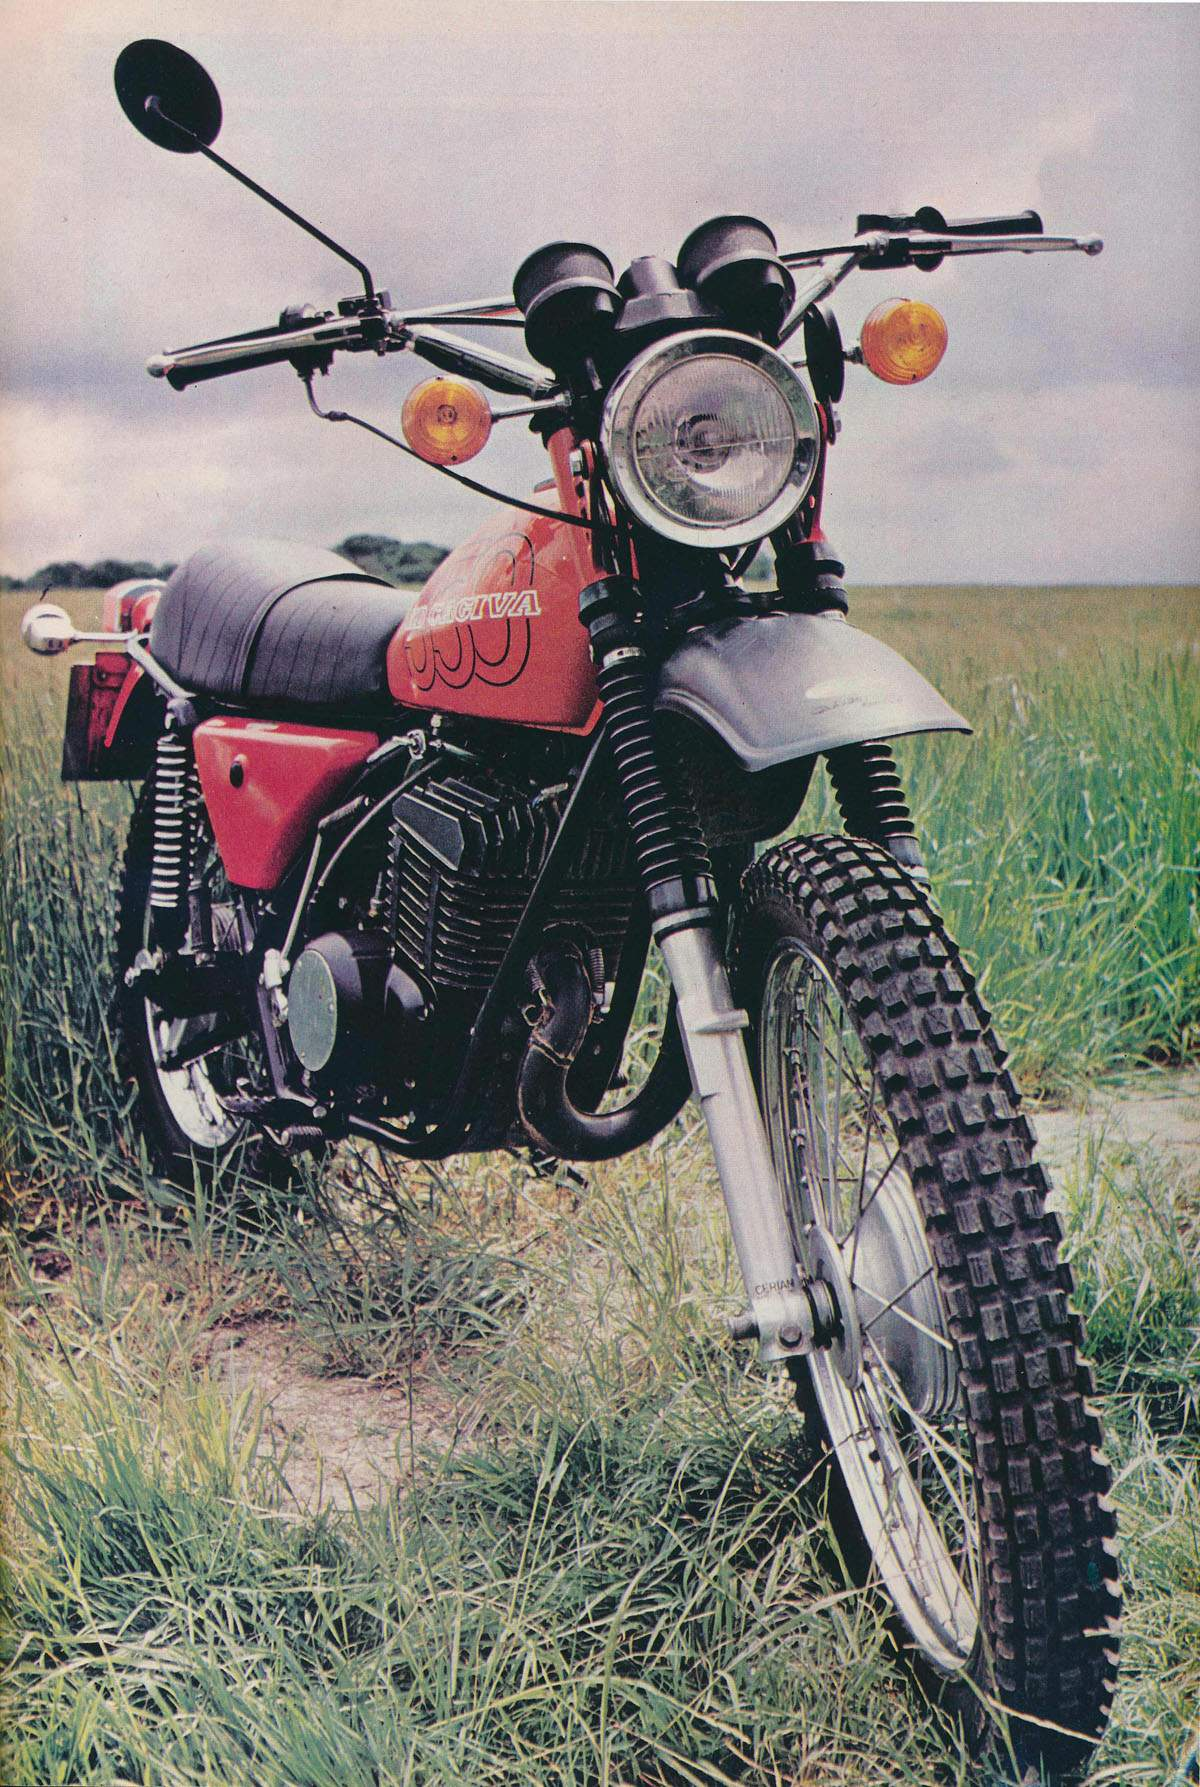 Cagiva SX 350 1979 images #66609